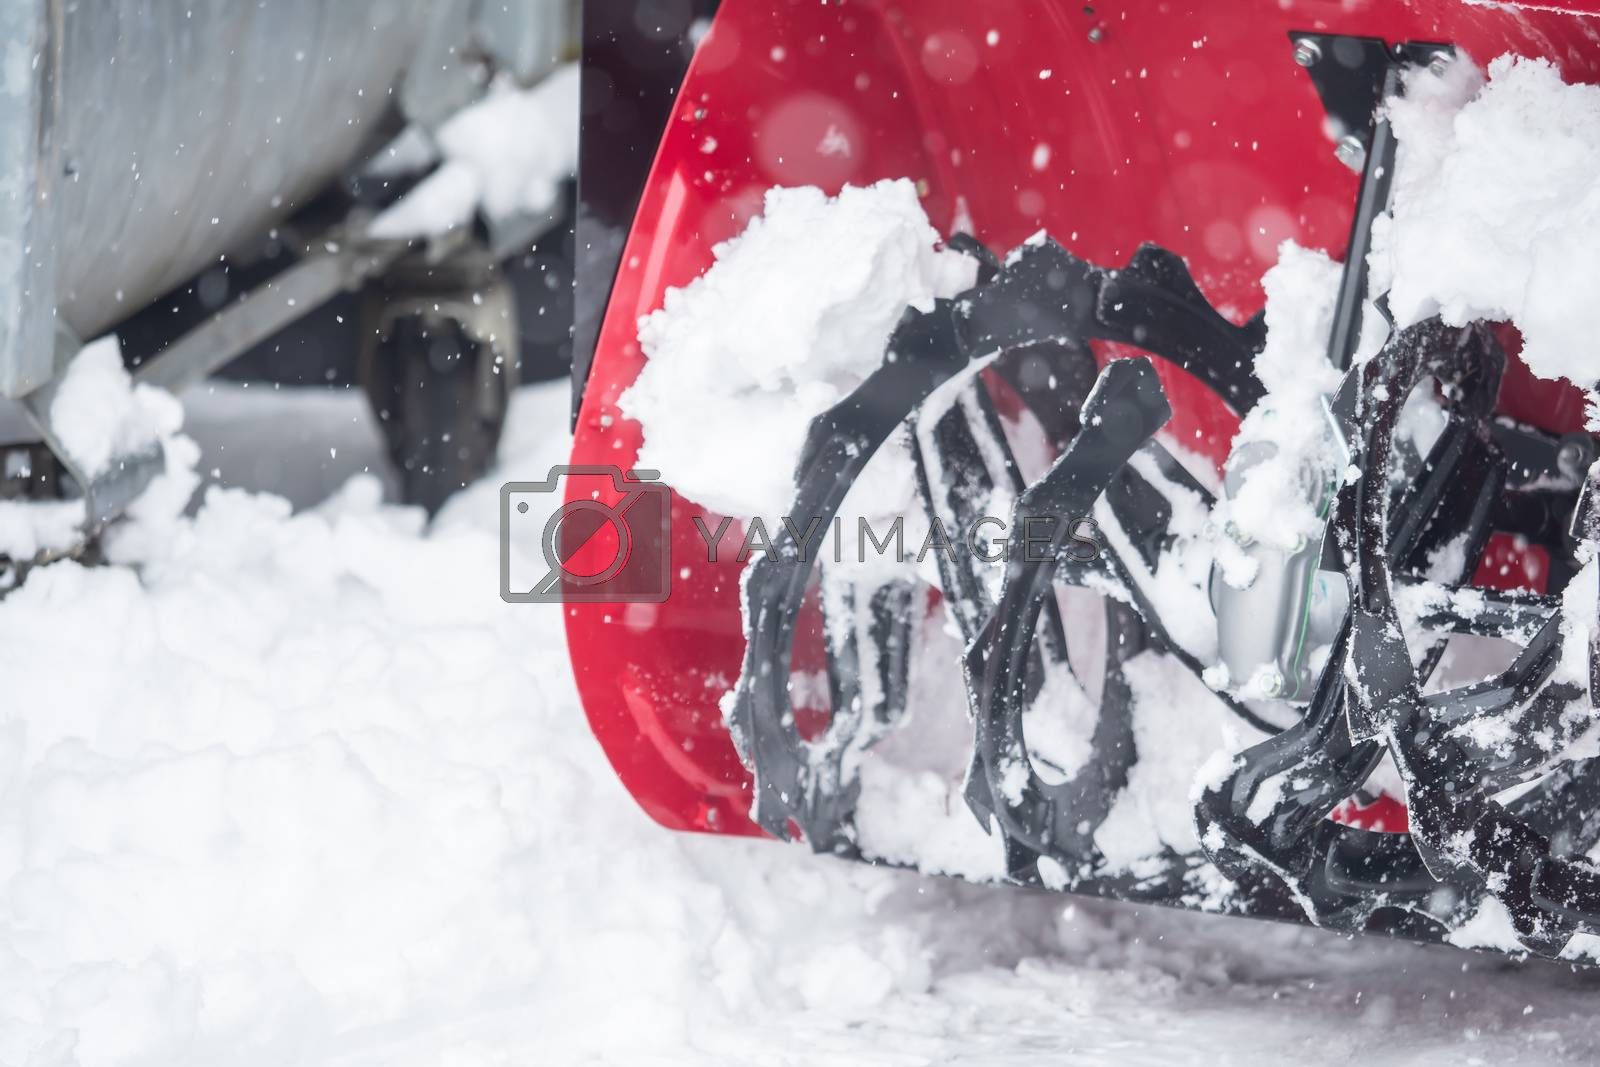 Someone uses a snowthrower outdoors in winter while it is snowin by Sandra Fotodesign